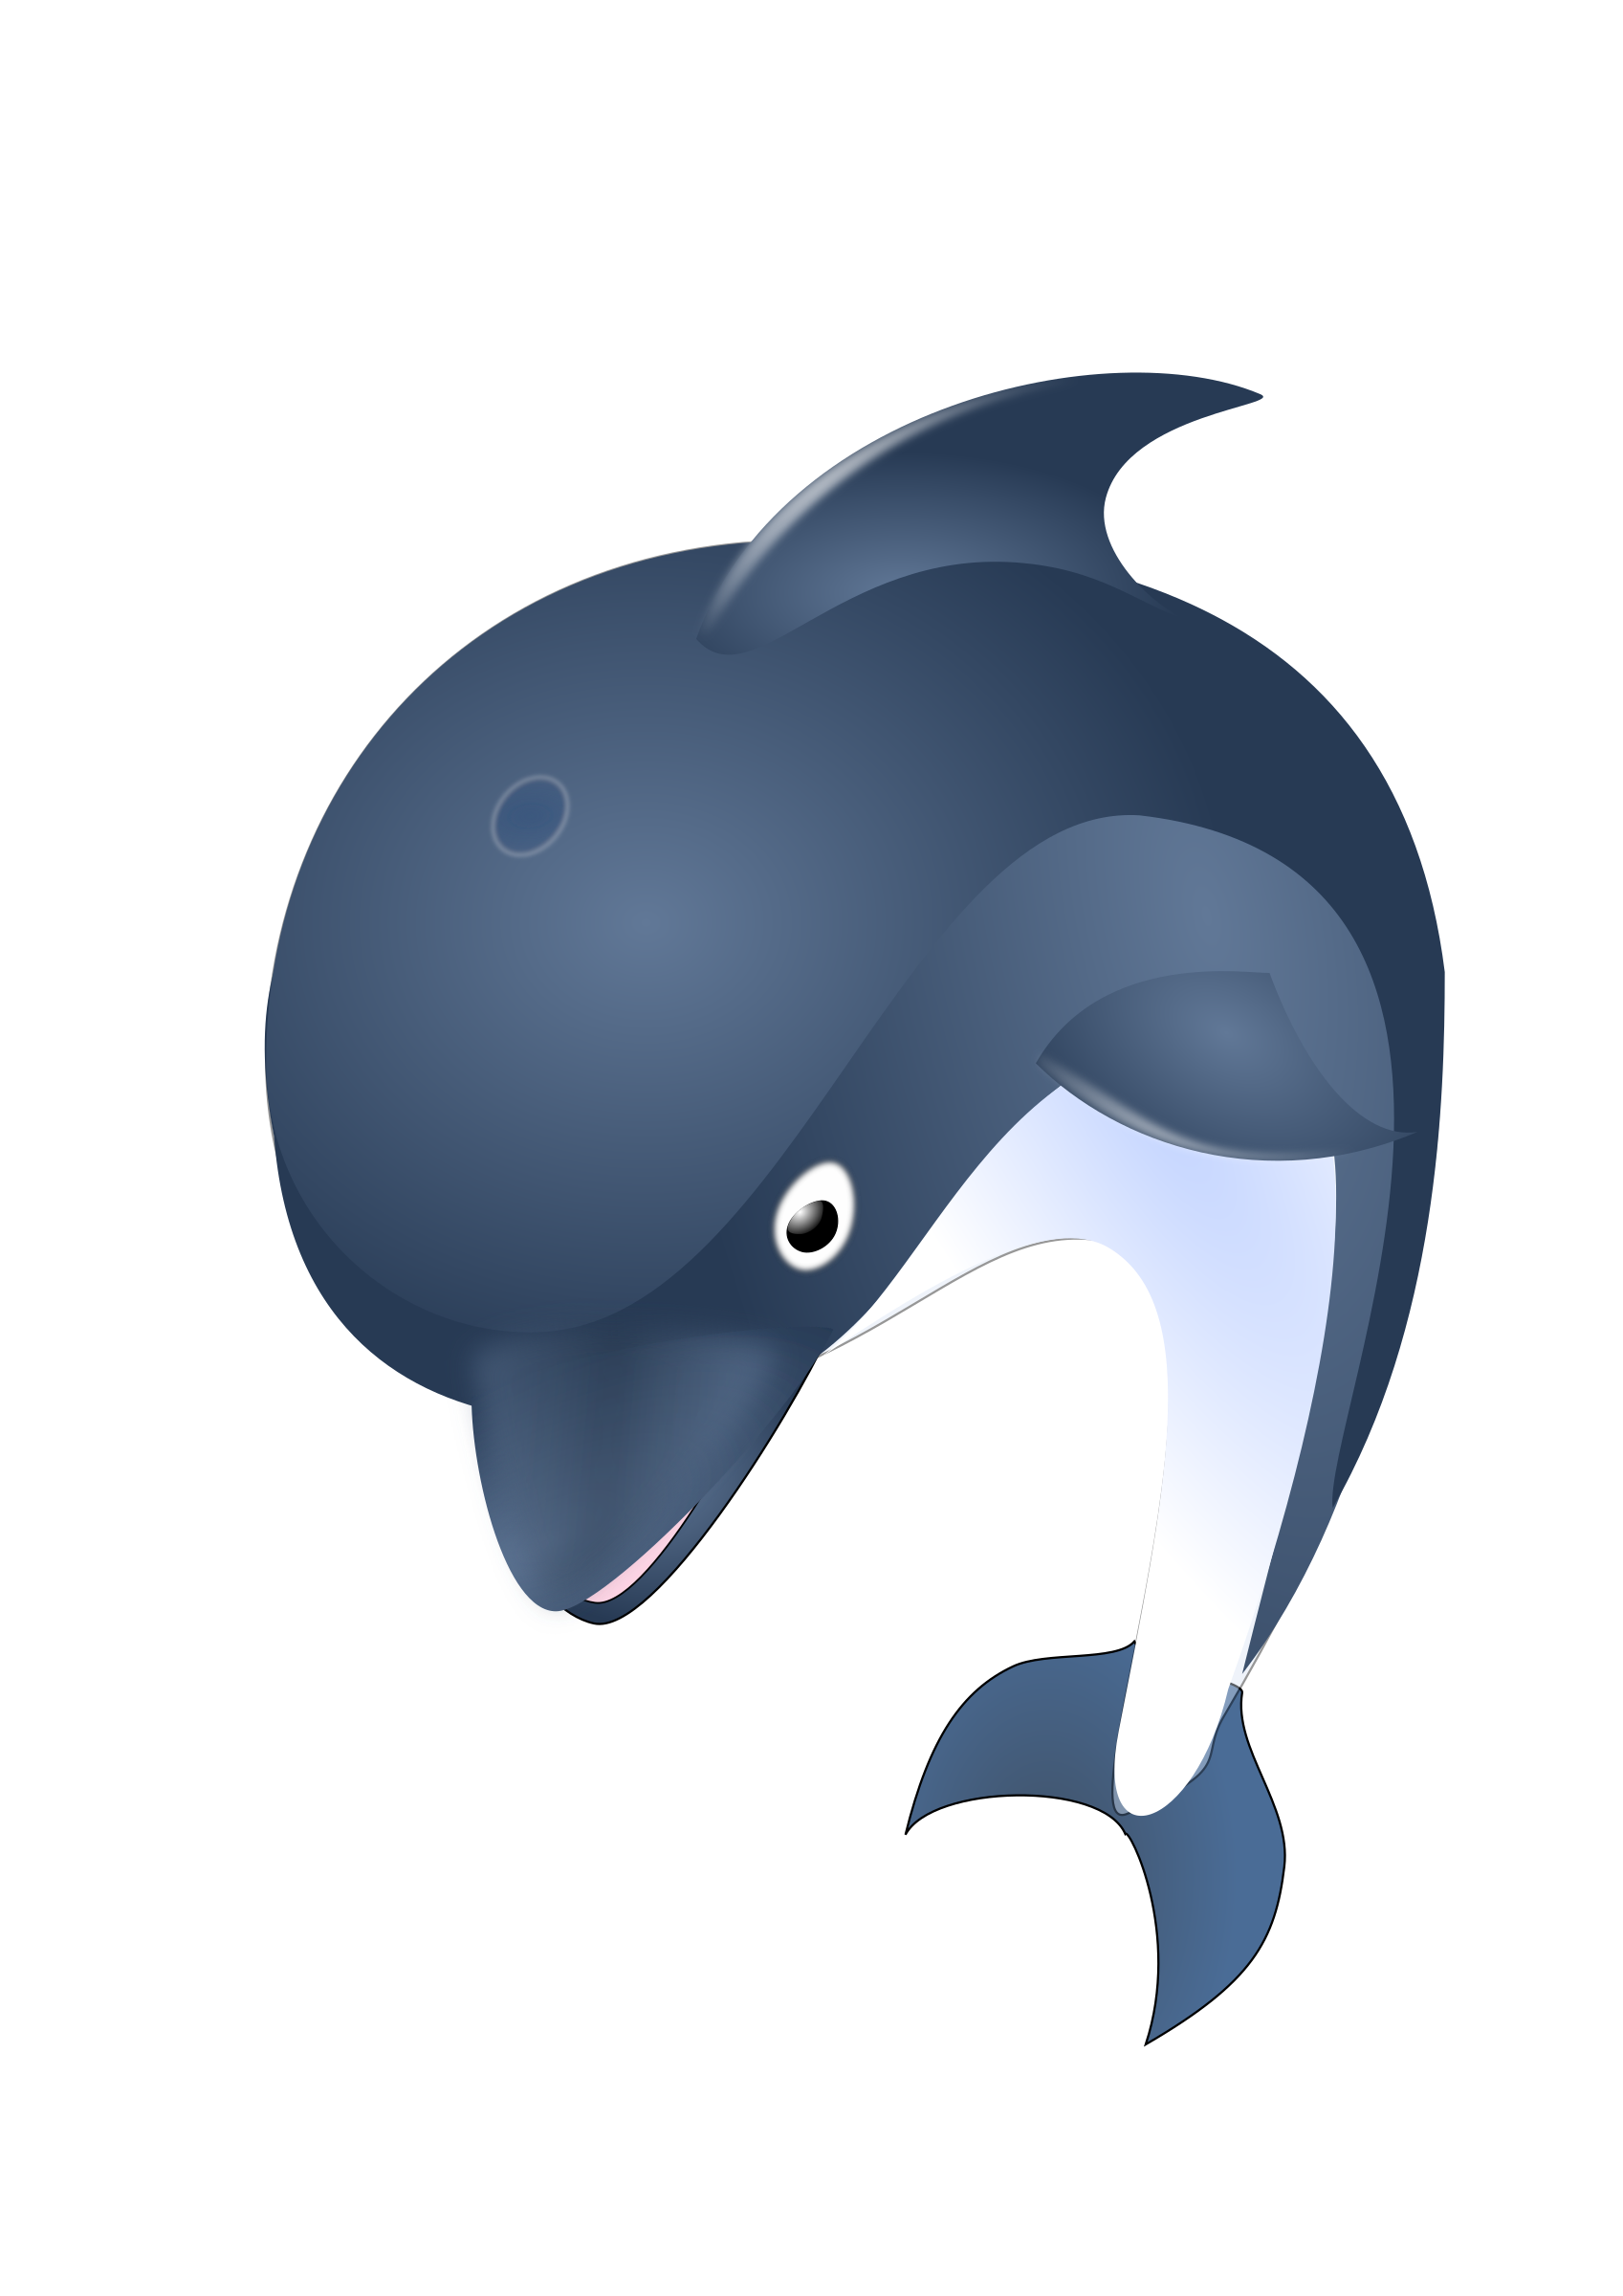 Jumping big image png. Dolphin clipart diving dolphin